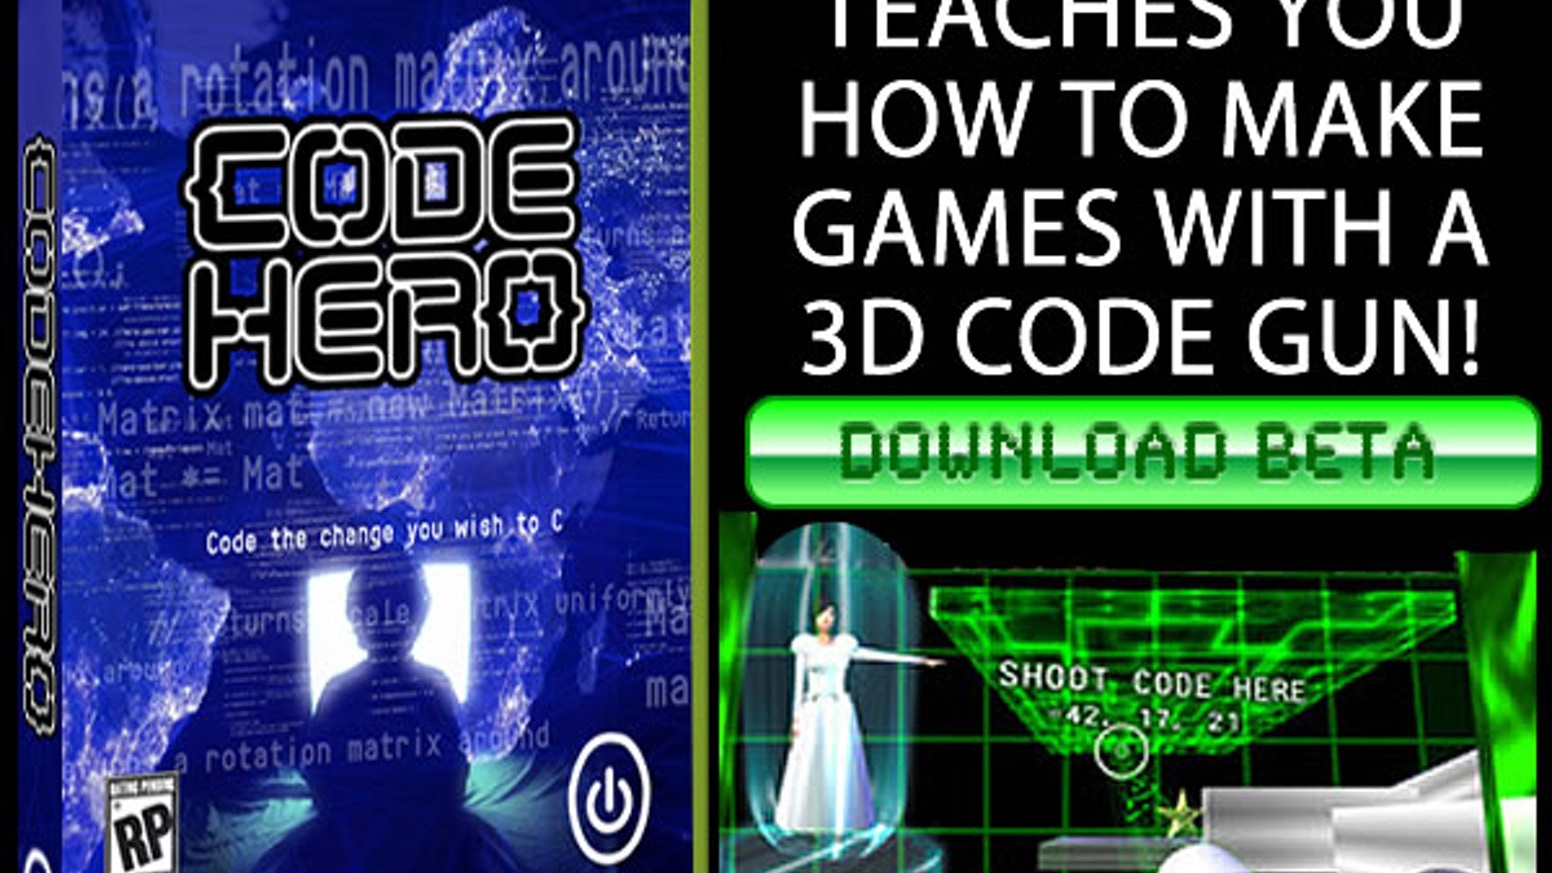 Code Hero: A Game That Teaches You To Make Games by Alex Peake